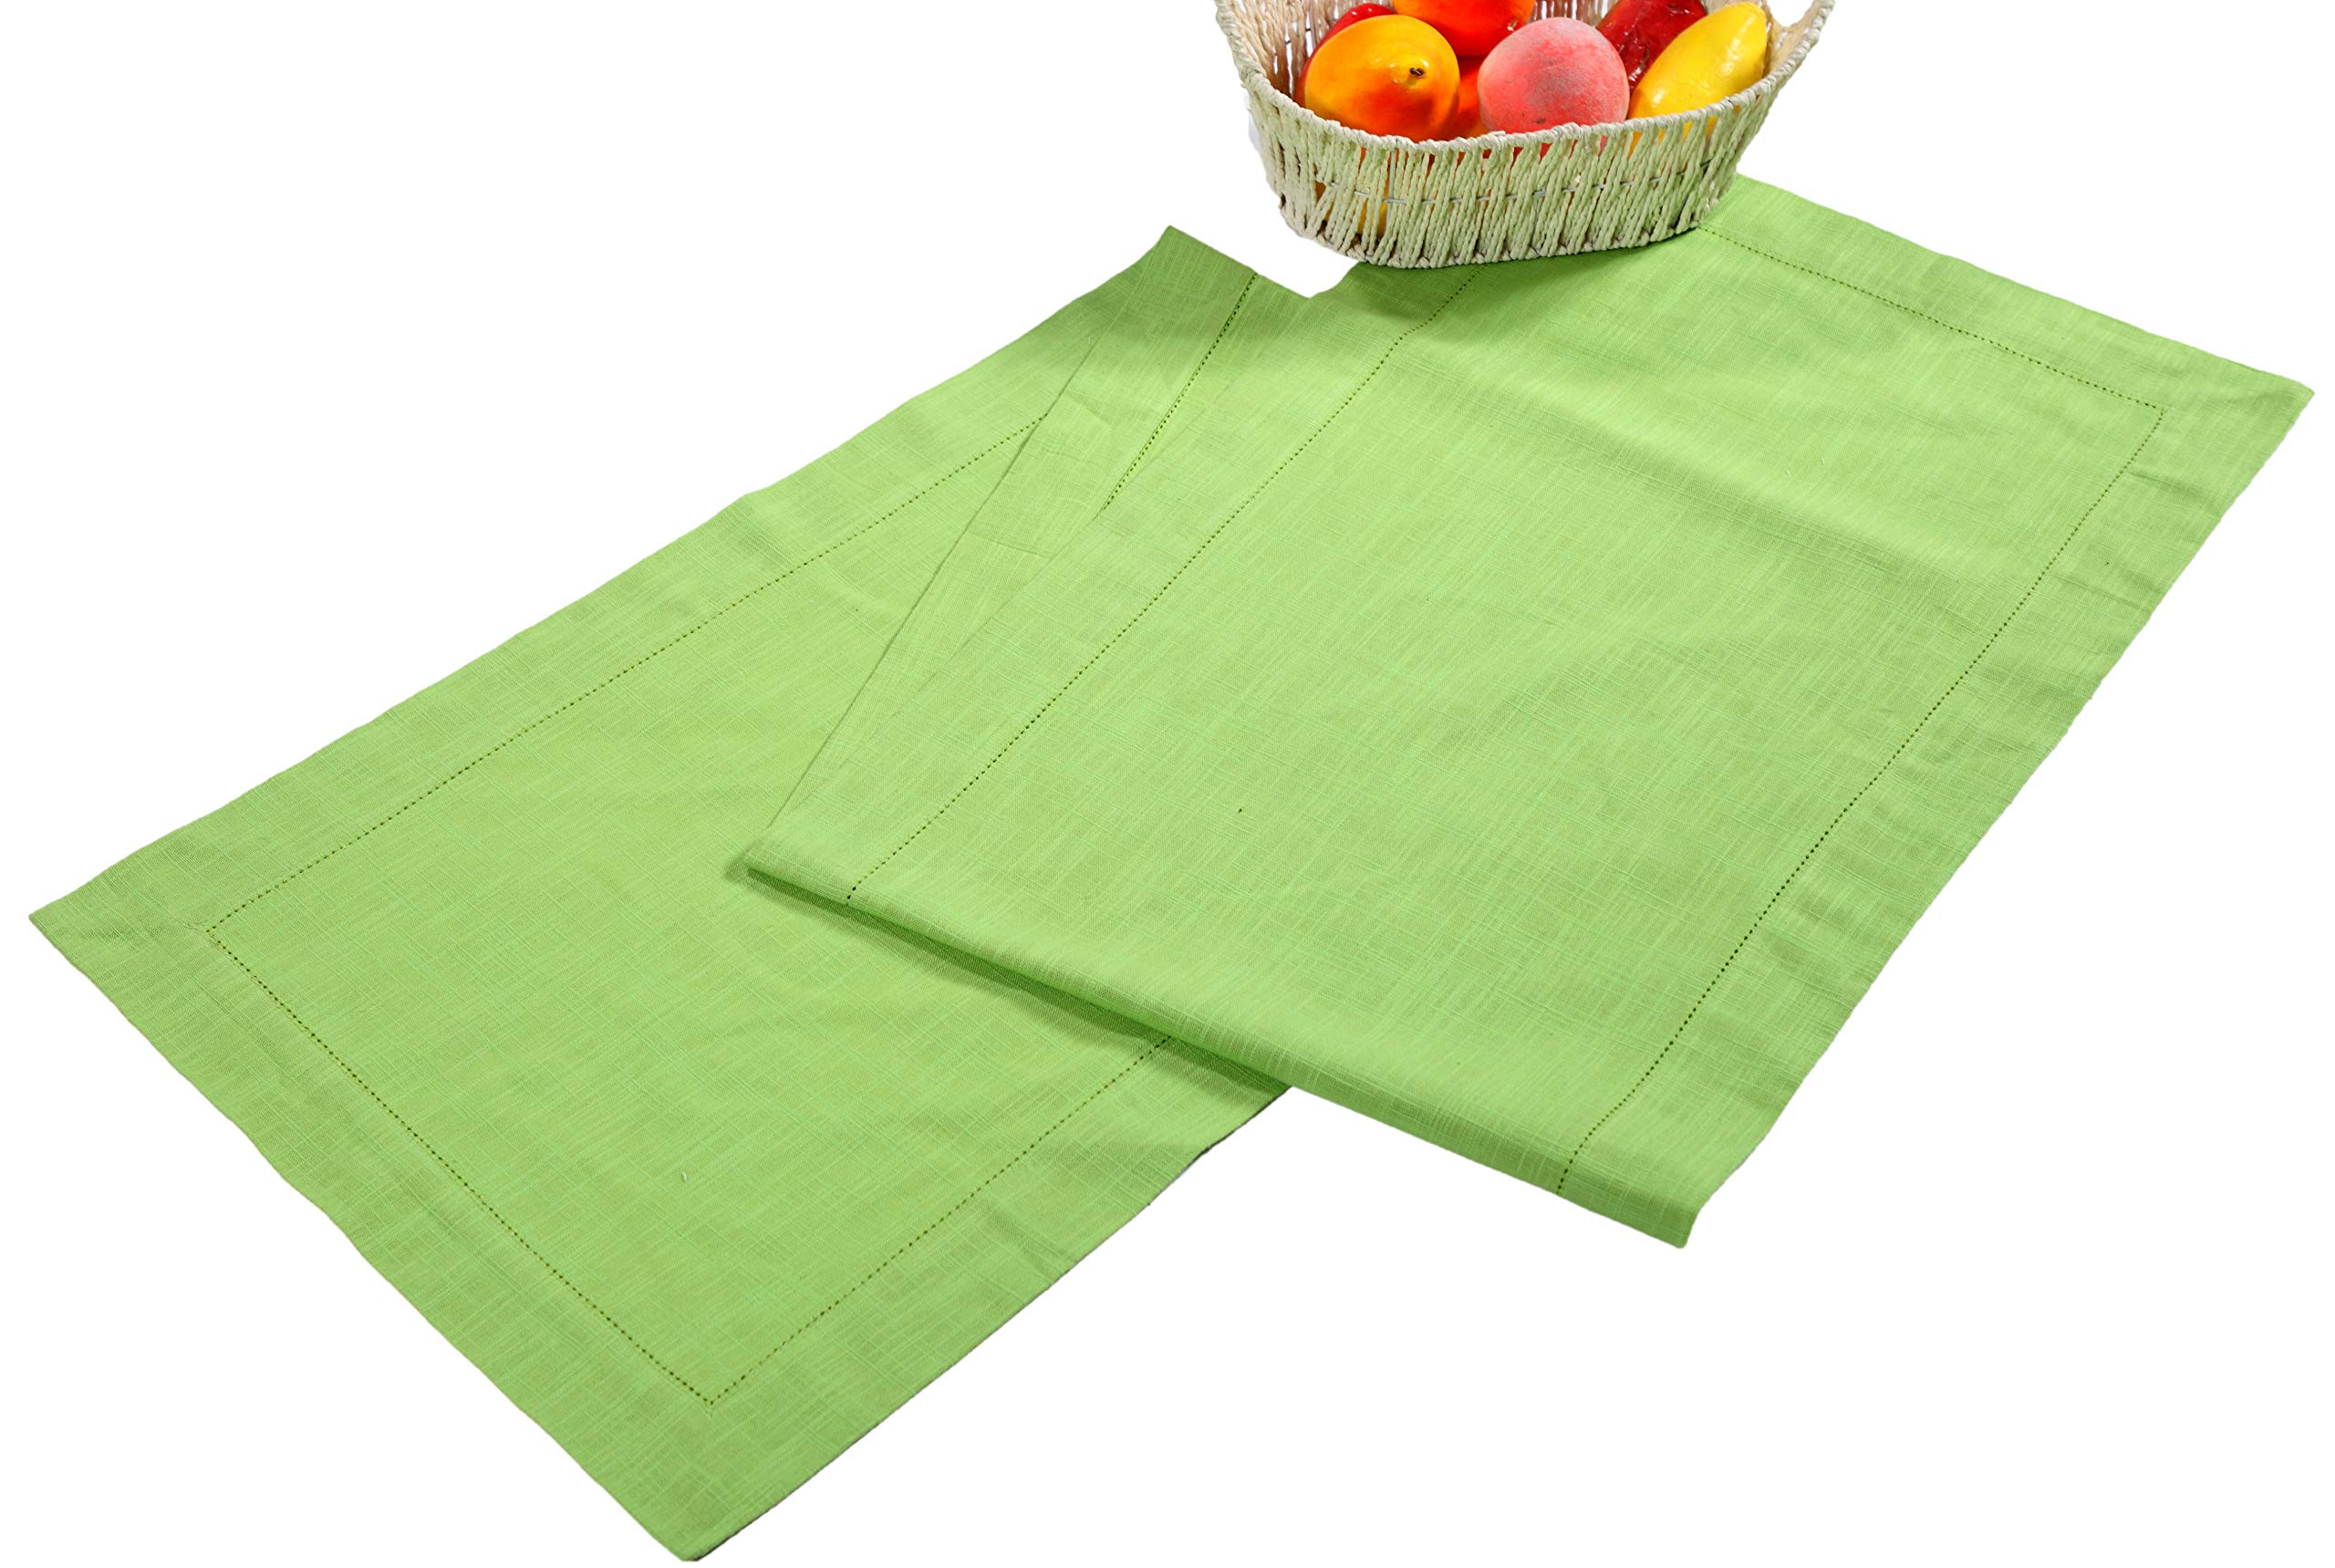 Linen Clubs Slub Cotton Table Runner in Lime Green Color with Hemstitched Detailing and Mitered Corner Finish on edges-100% Cotton Size 16x72Inch by Linen Clubs